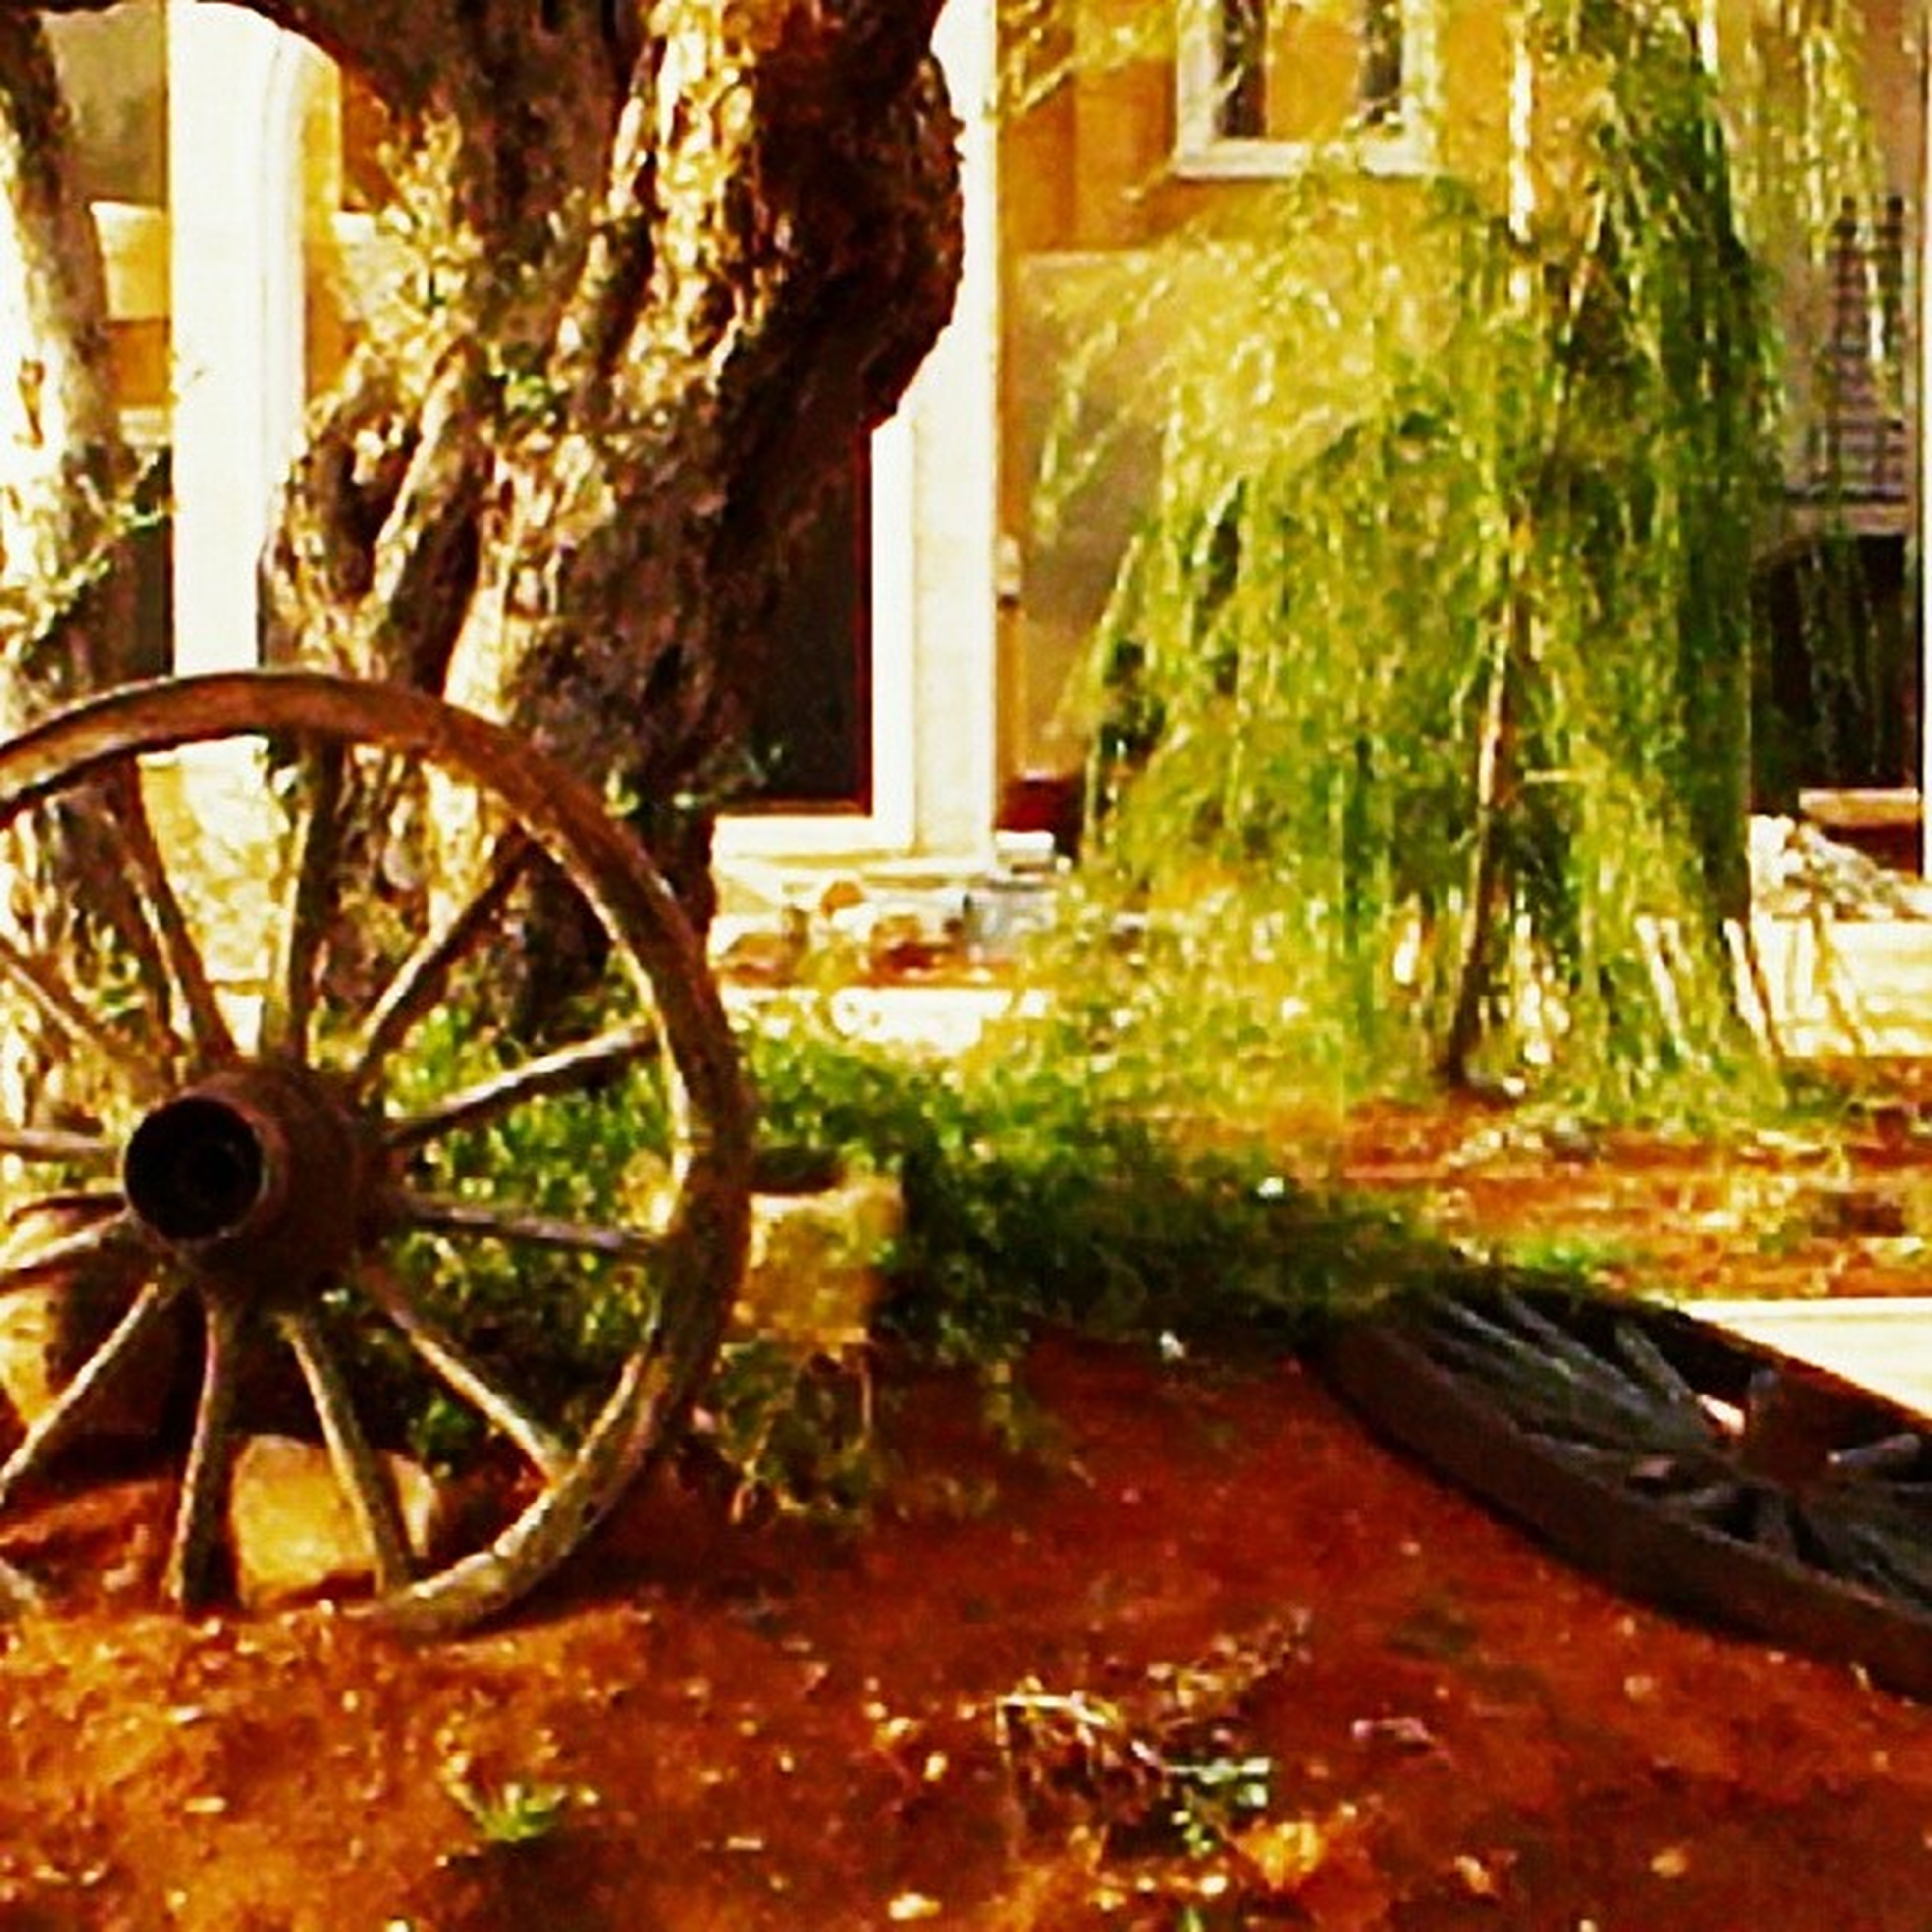 built structure, house, bicycle, land vehicle, architecture, plant, front or back yard, potted plant, abandoned, building exterior, growth, mode of transport, wheel, stationary, old, transportation, sunlight, tree, day, parked